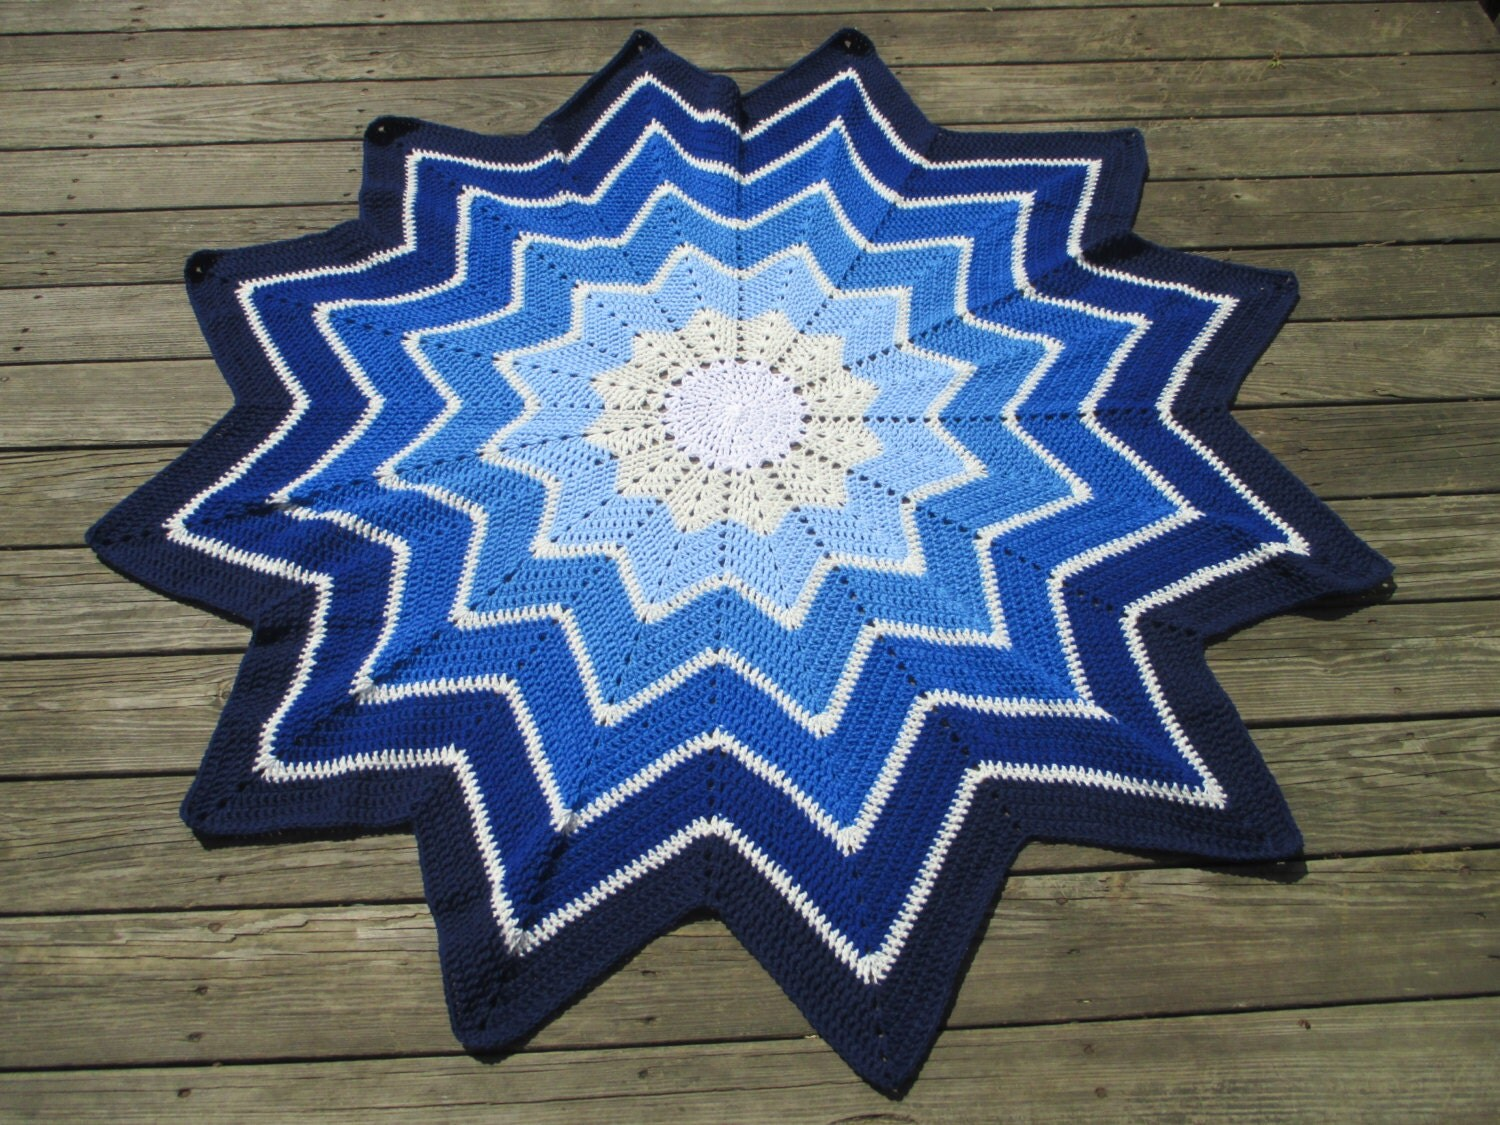 Crochet 12 Point Star Afghan Blanket Throw